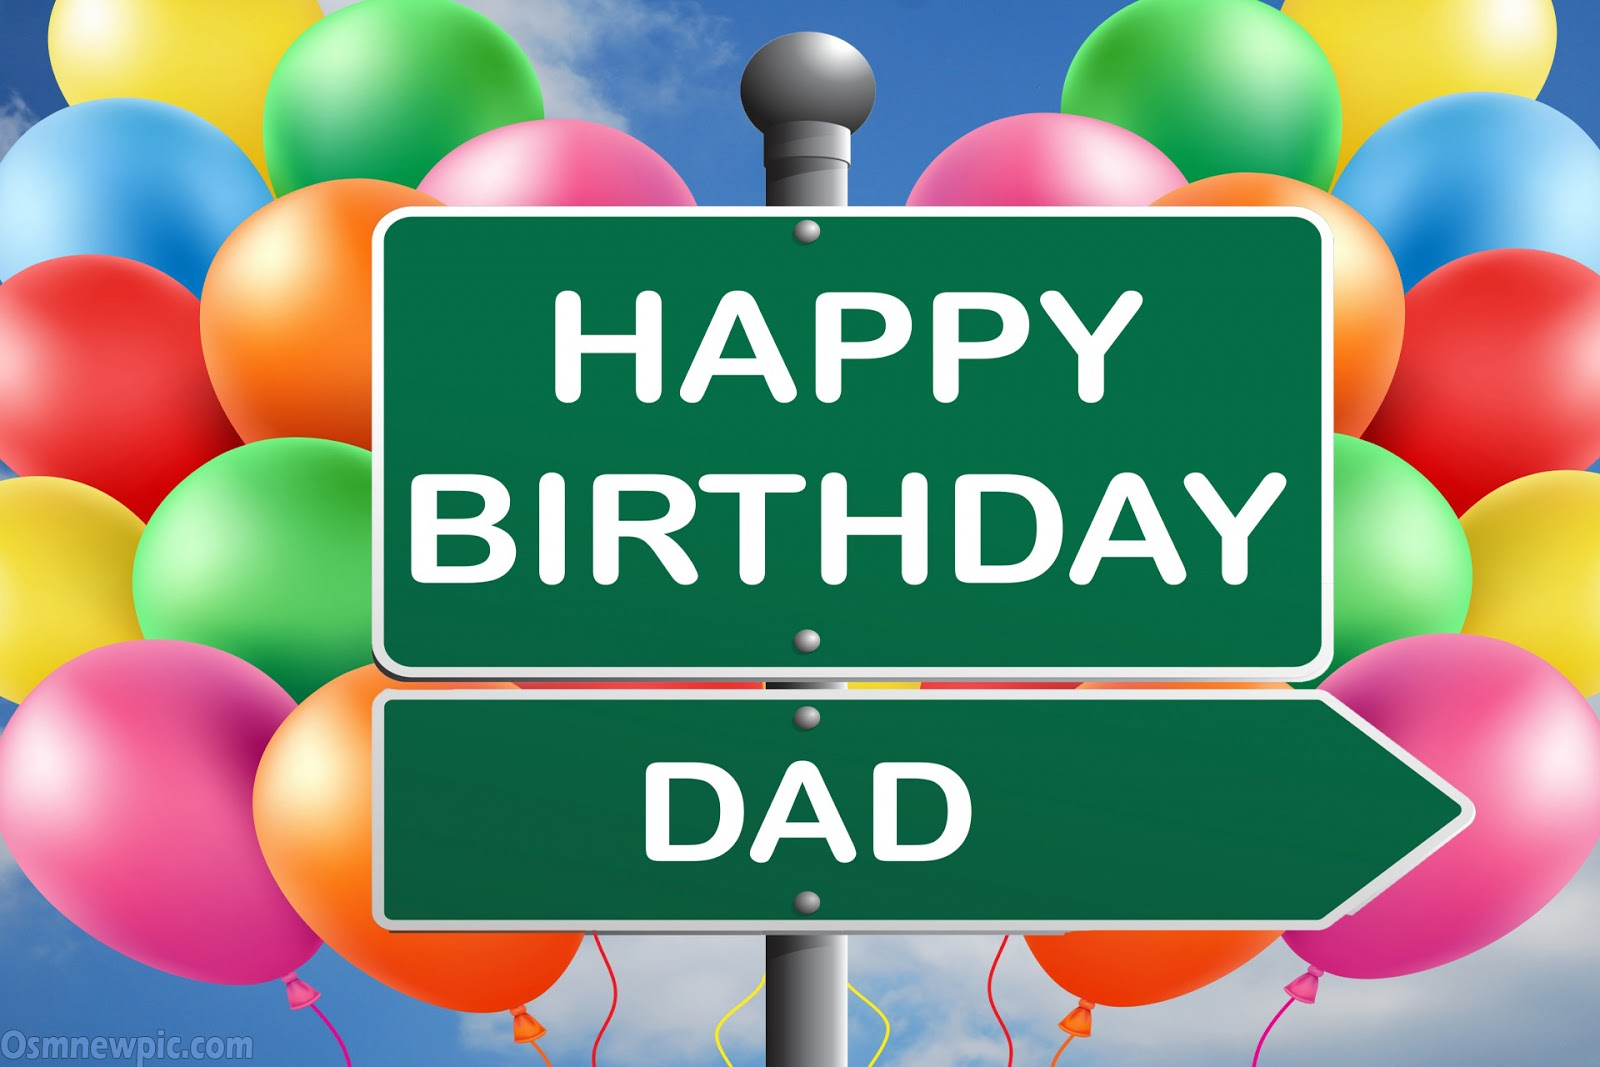 Happy Birthday Dad Images Download Free